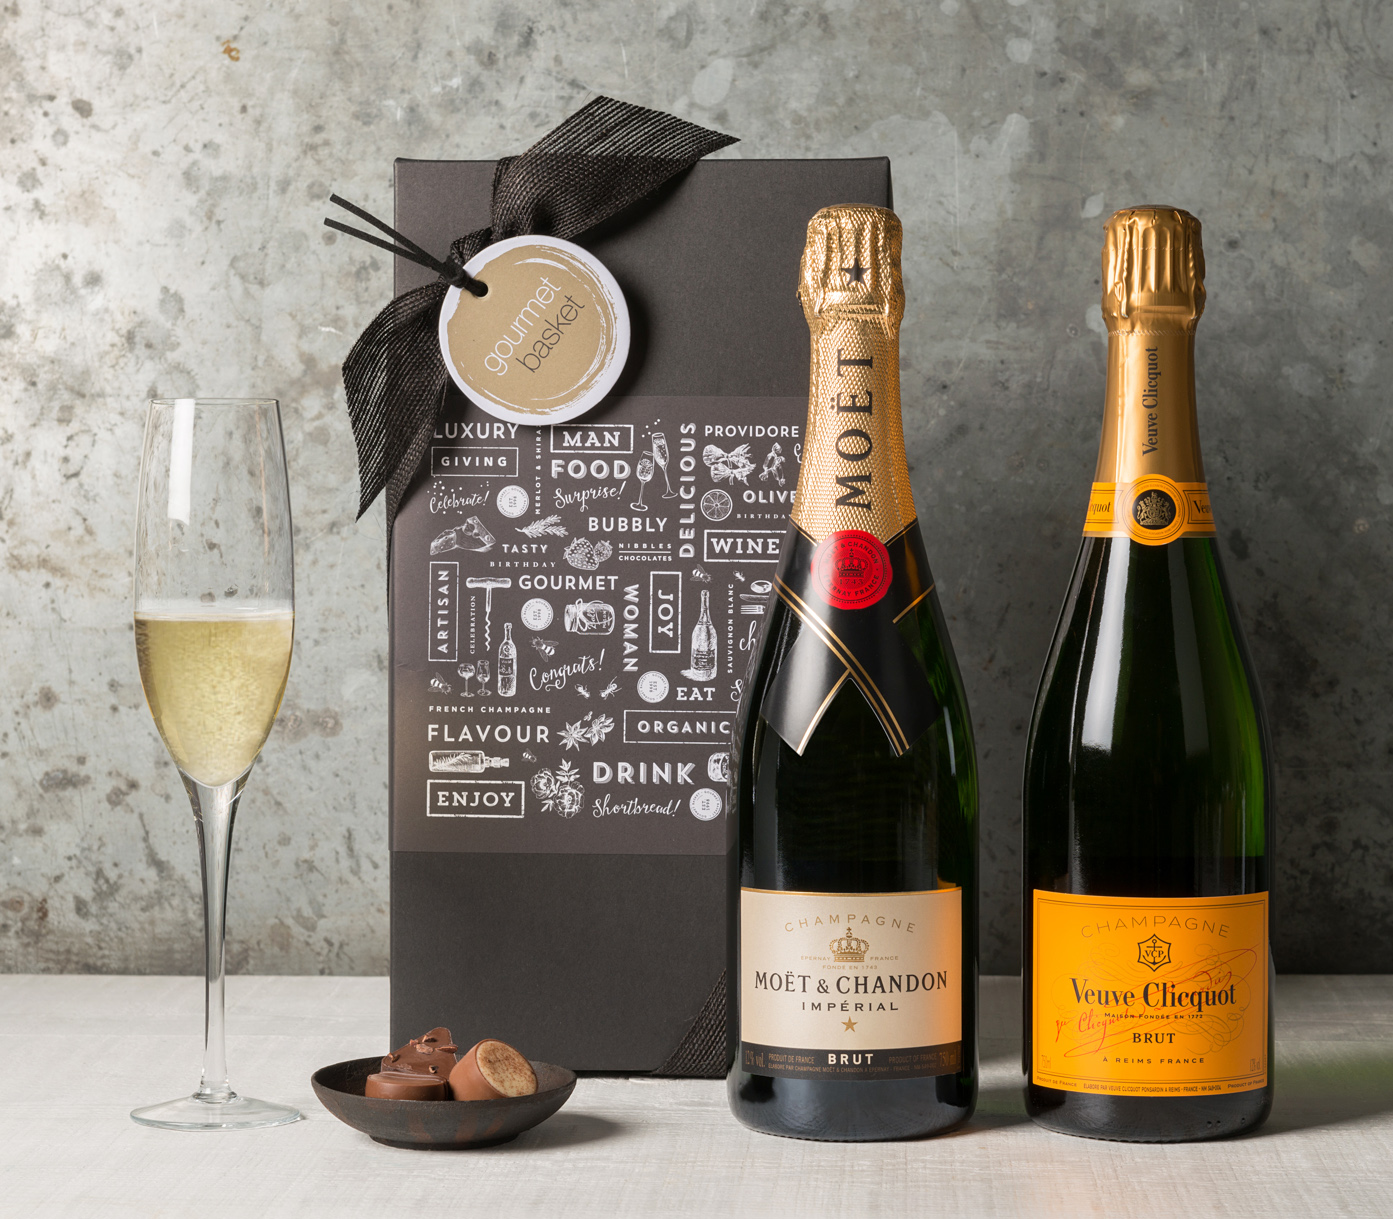 Champagne gift basket | Wine & Champagne Gift Hampers | Gourmet Basket